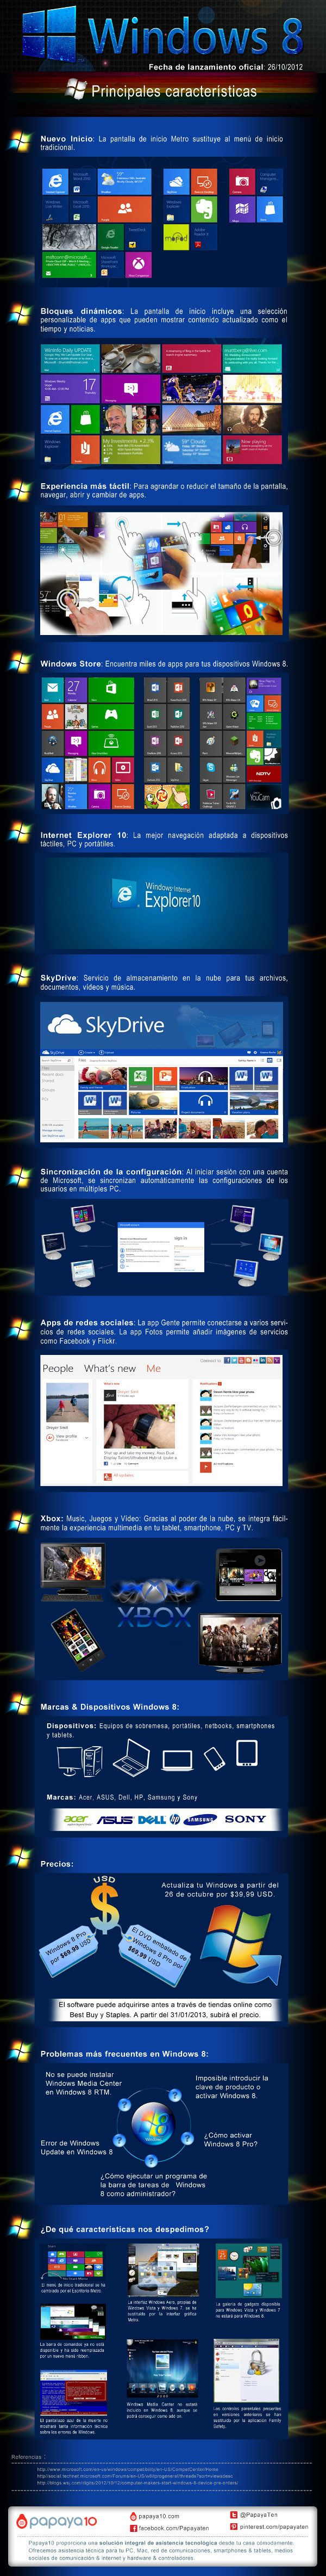 Infografía: Las características de Windows 8